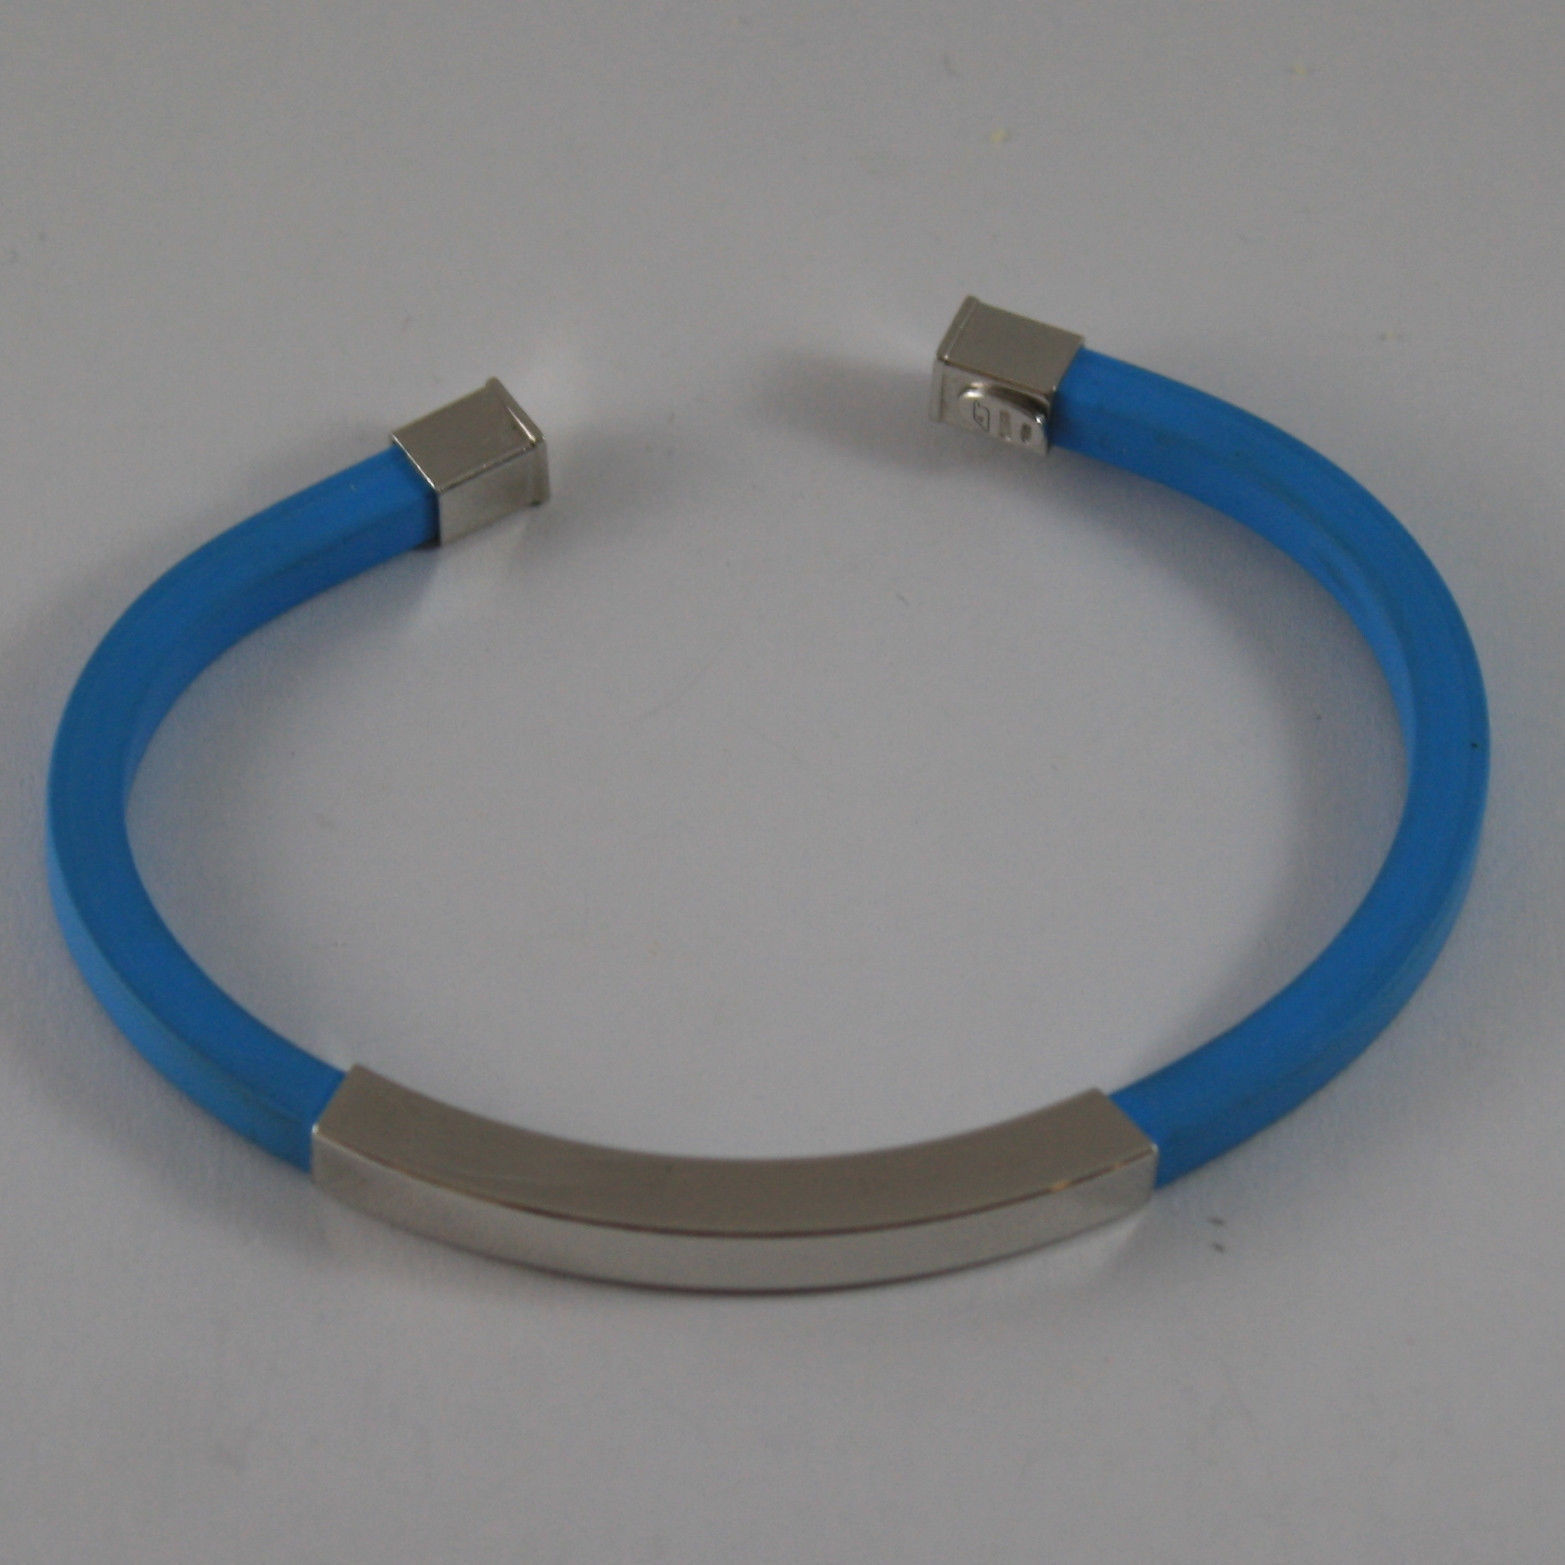 .925 RHODIUM SILVER RIGID BRACELET WITH BLUE RUBBER AND PLATE